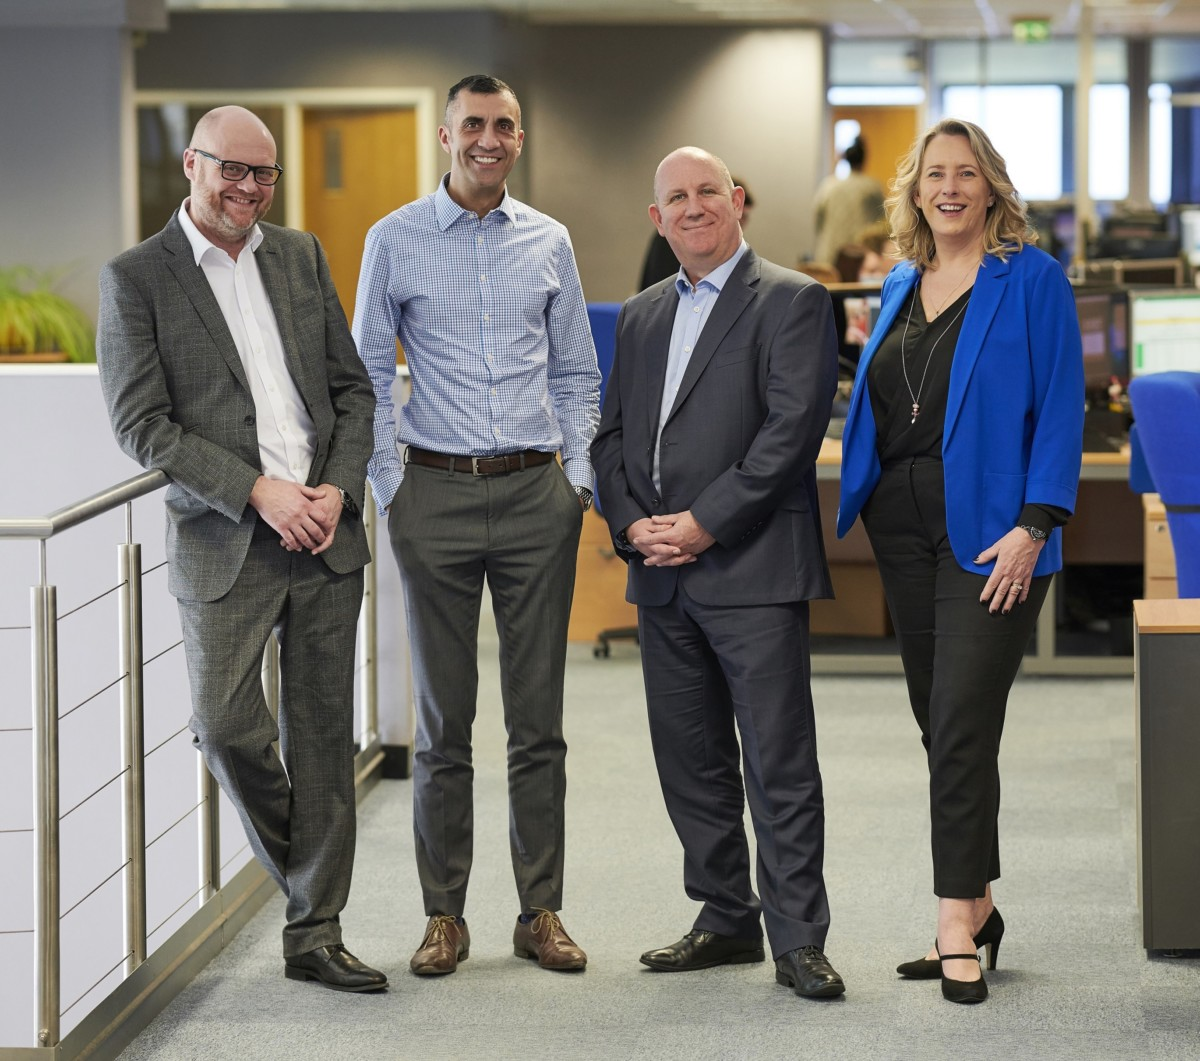 Christian Hampshire, operations director; Darren Beech, finance director; Keith Mackie, managing director; and Louise Plant, sales director, Hobart Service